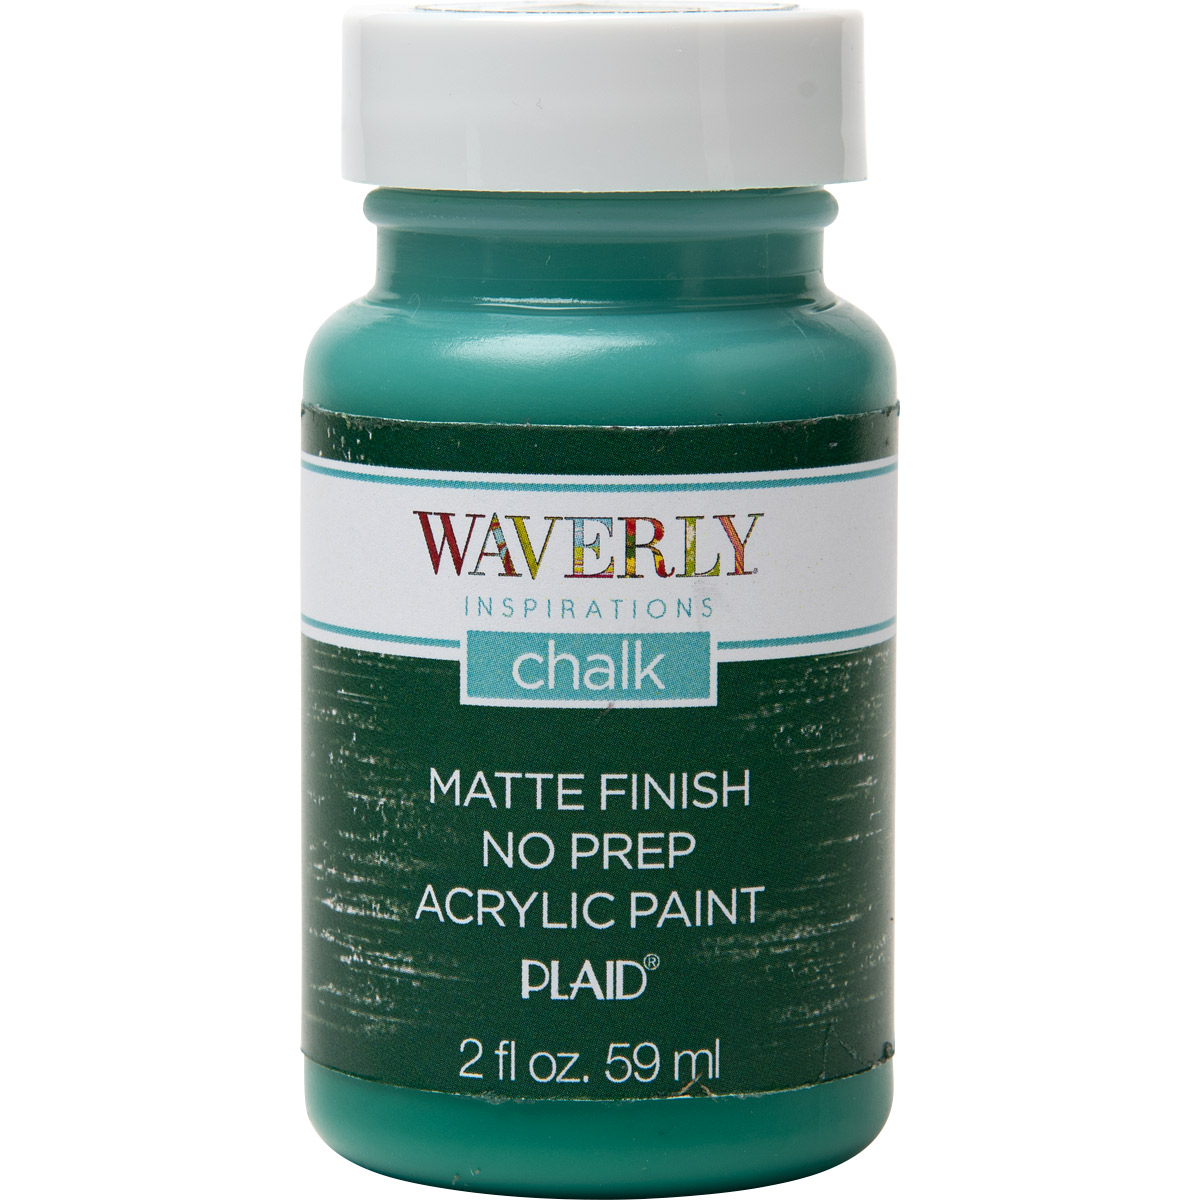 Waverly ® Inspirations Chalk Finish Acrylic Paint - Malachite, 2 oz.